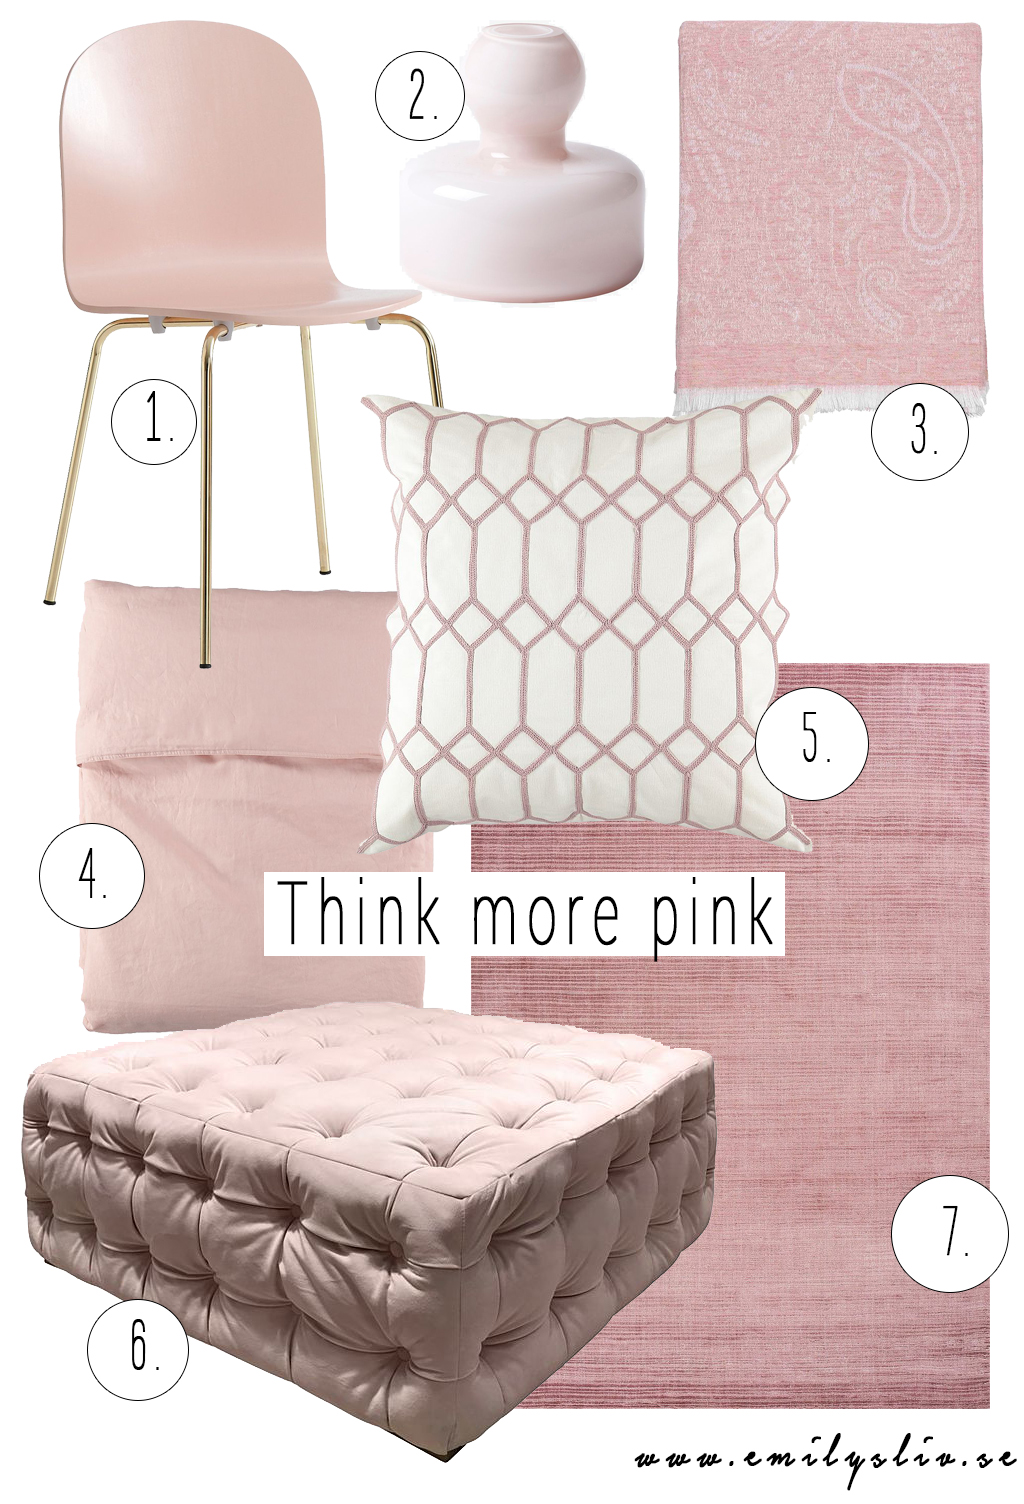 thinkmorepink